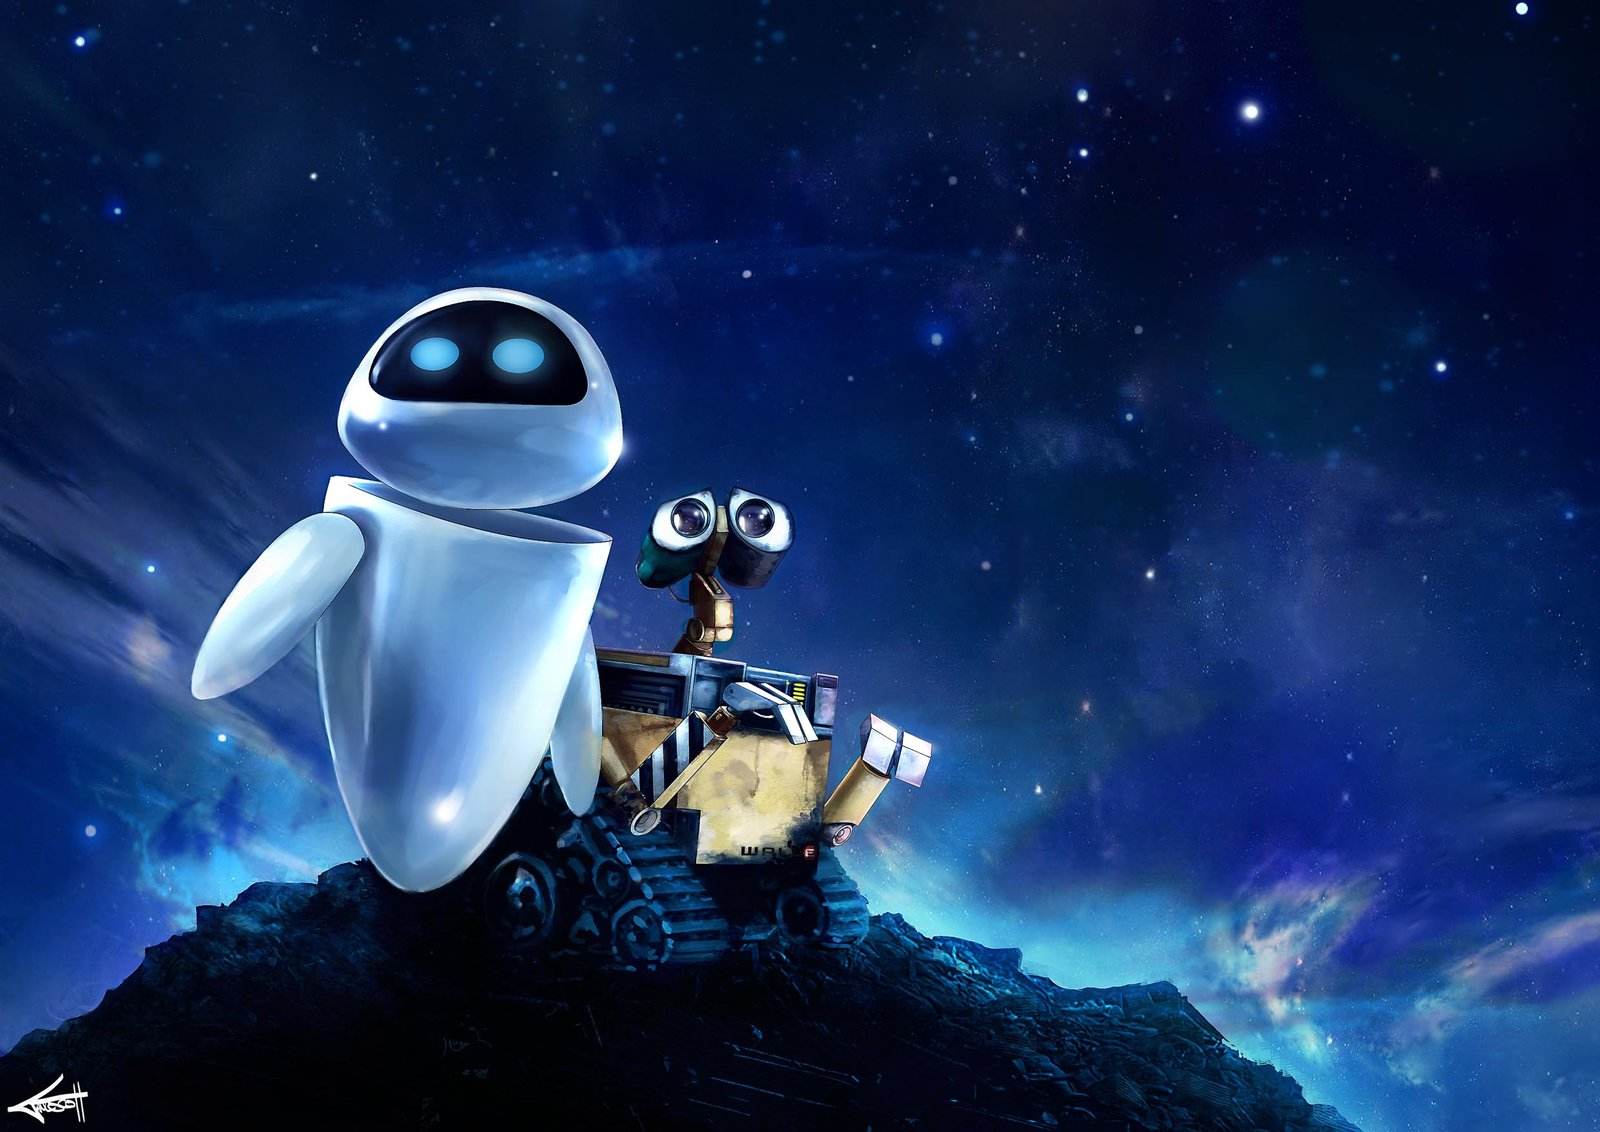 wall-E computer tech movie